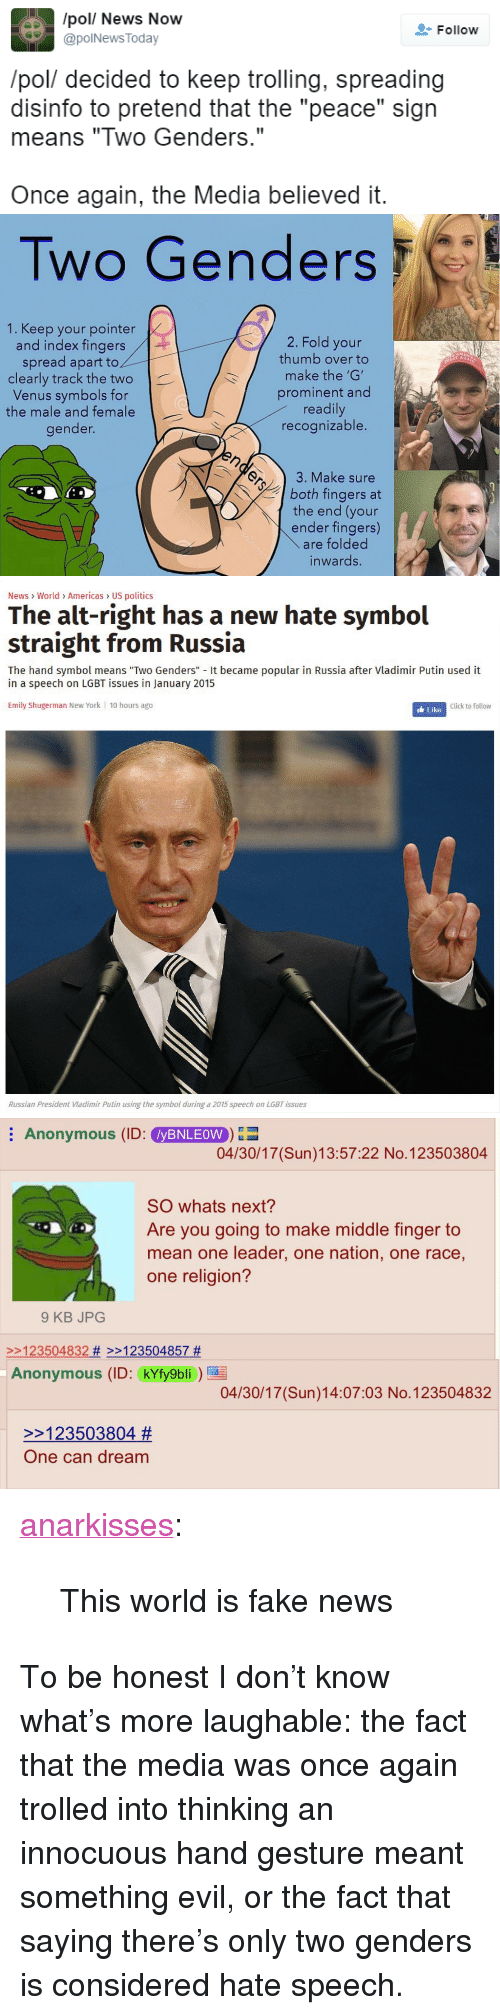 """Hand Gesture: /pol/ News Now  @polNews Today  Follow  /pol/ decided to keep trolling, spreading  disinfo to pretend that the """"peace"""" sign  means """"Two Genders.""""  Once again, the Media believed it.   Two Genders  1. Keep your pointer  and index fingers  spread apart to  clearly track the two  Venus symbols for  the male and female  gender.  2. Fold your  thumb over to  make the 'G'  prominent and  readily  recognizable.  T AGA  3. Make sure  both fingers at  the end (your  ender fingers)  are folded  inwards.   News World> Americas US politics  The alt-right has a new hate symbol  straight from Russia  The hand symbol means """"Two Genders"""" It became popular in Russia after Vladimir Putin used it  in a speech on LGBT issues in January 2015  Emily Shugerman New York 10 hours ago  Click to follow  Russian President Viadimir Putin using the symbol during a 2015 speech on LGBT issues   Anonymous (ID: yBNLEOW  04/30/17 (Sun)13:57:22 No.123503804  SO whats next?  Are you going to make middle finger to  mean one leader, one nation, one race,  one religion?  9 KB JPOG  2123504832 # >>123504857 #  Anonymous (ID: kYfy9bli  04/30/17 (Sun)14:07:03 No.123504832  >>123503804 #  One can dream <p><a href=""""https://anarkisses.tumblr.com/post/160191763797/this-world-is-fake-news"""" class=""""tumblr_blog"""">anarkisses</a>:</p>  <blockquote><p>This world is fake news</p></blockquote>  <p>To be honest I don&rsquo;t know what&rsquo;s more laughable: the fact that the media was once again trolled into thinking an innocuous hand gesture meant something evil, or the fact that saying there&rsquo;s only two genders is considered hate speech.</p>"""